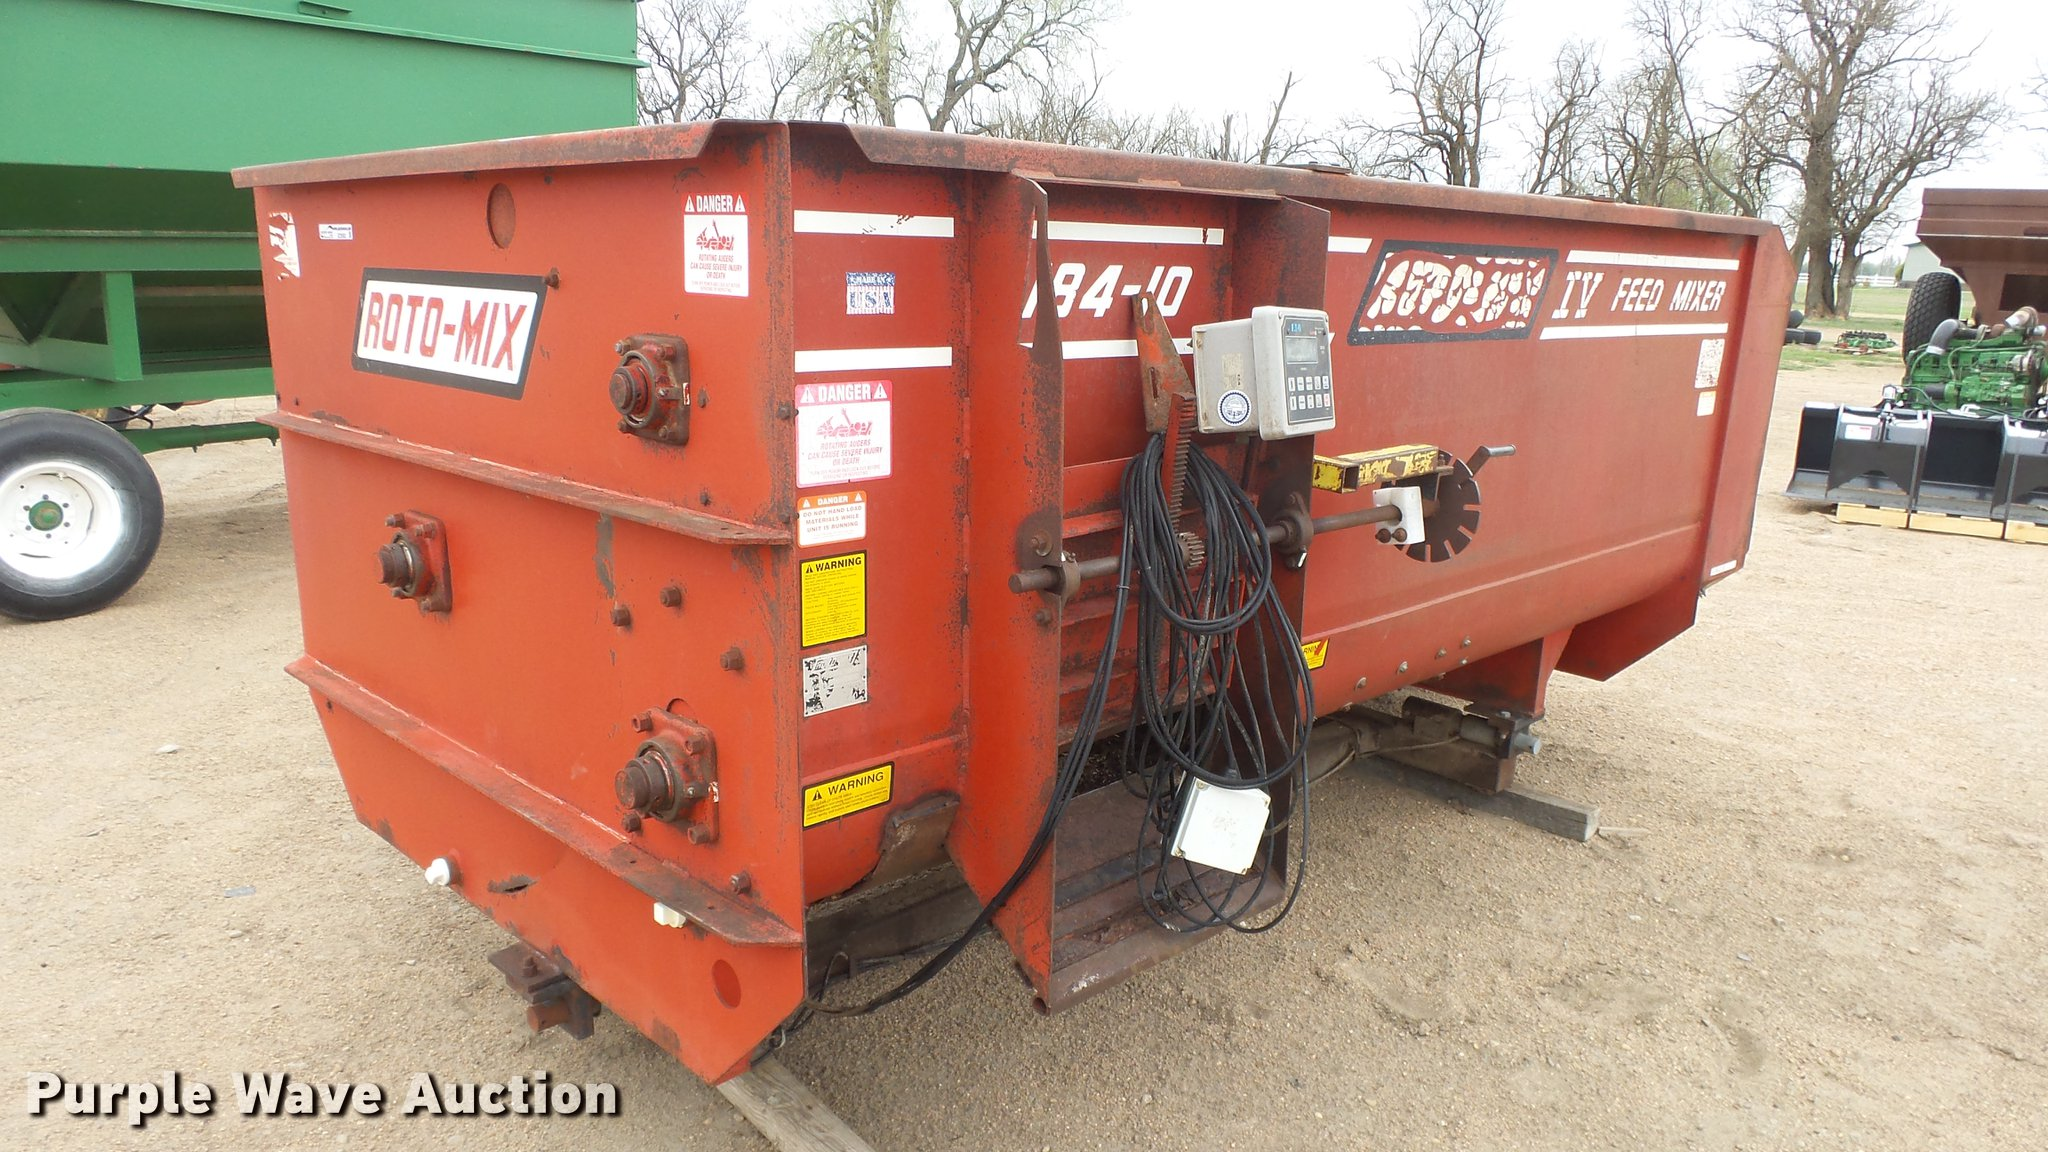 RotoMix 184-10 feed mixer | Item EZ9582 | SOLD! May 9 Ag Equ